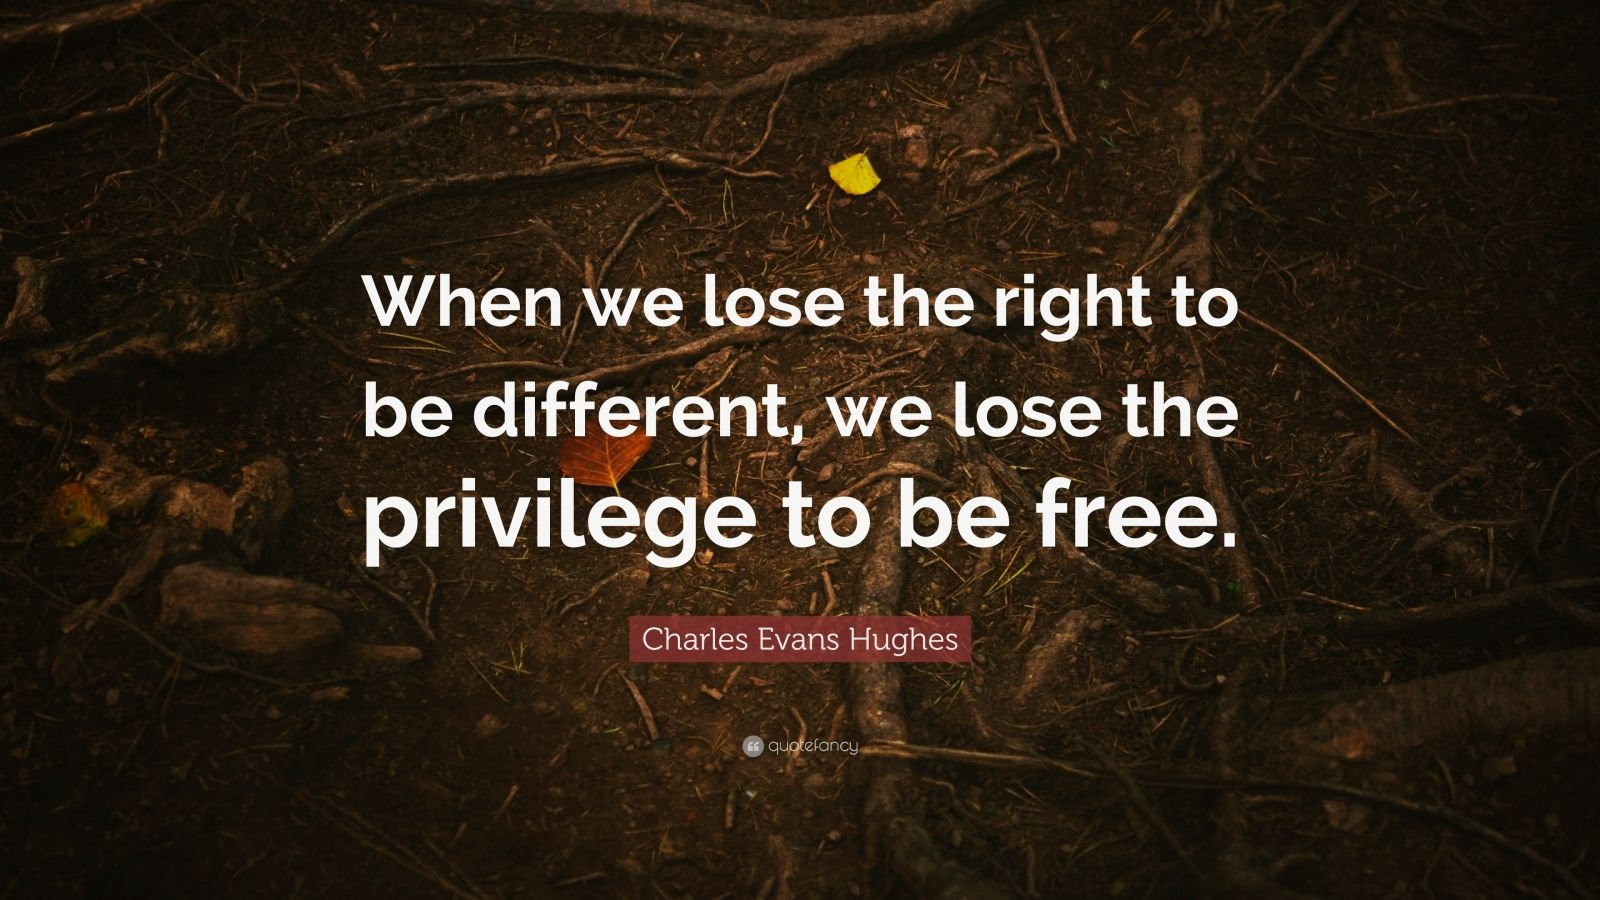 """Charles Evans Hughes Quote: """"When we lose the right to be different, we lose the privilege to be free."""""""